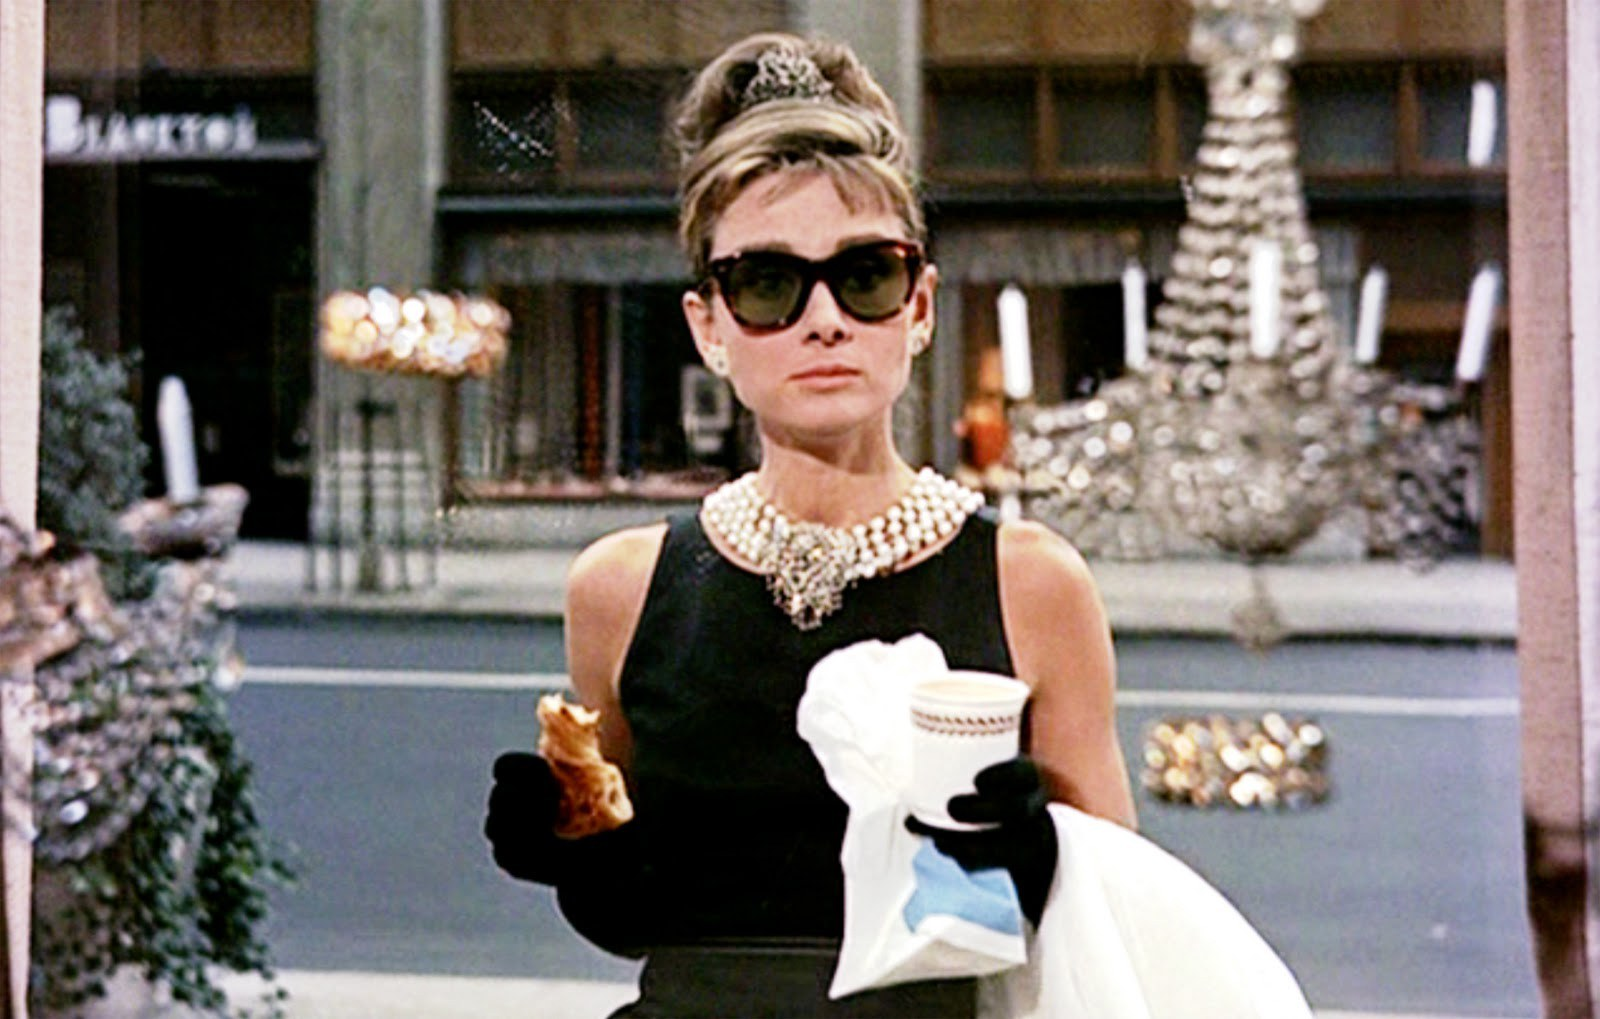 Breakfast-At-Tiffany's-Is-A-Real-Cafe-Now-haute-living-tita-carra.jpg